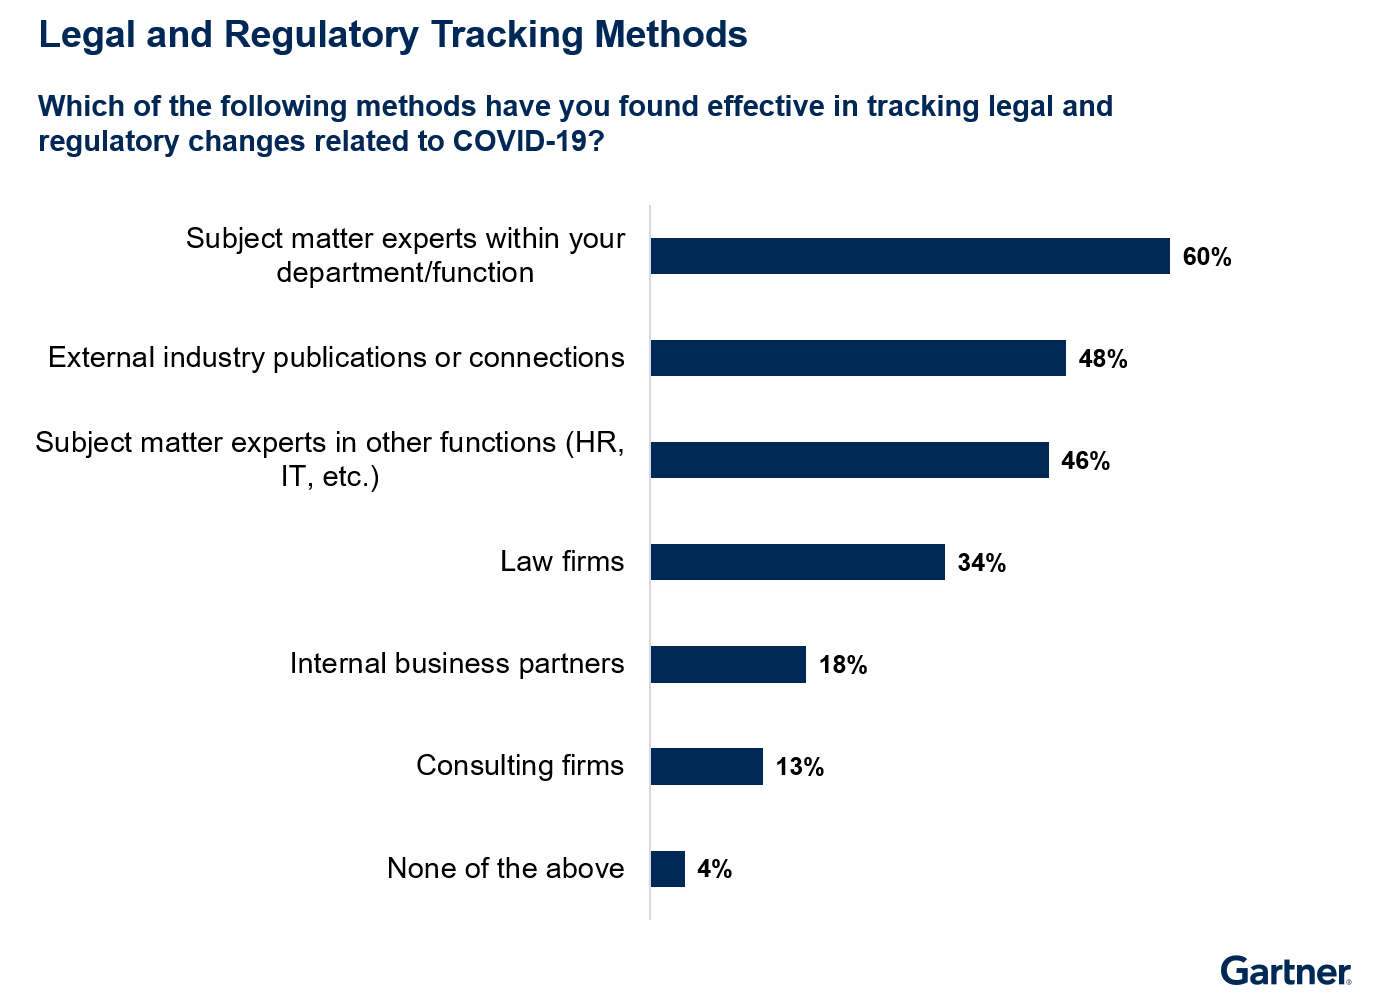 Legal and Regulatory Tracking Methods